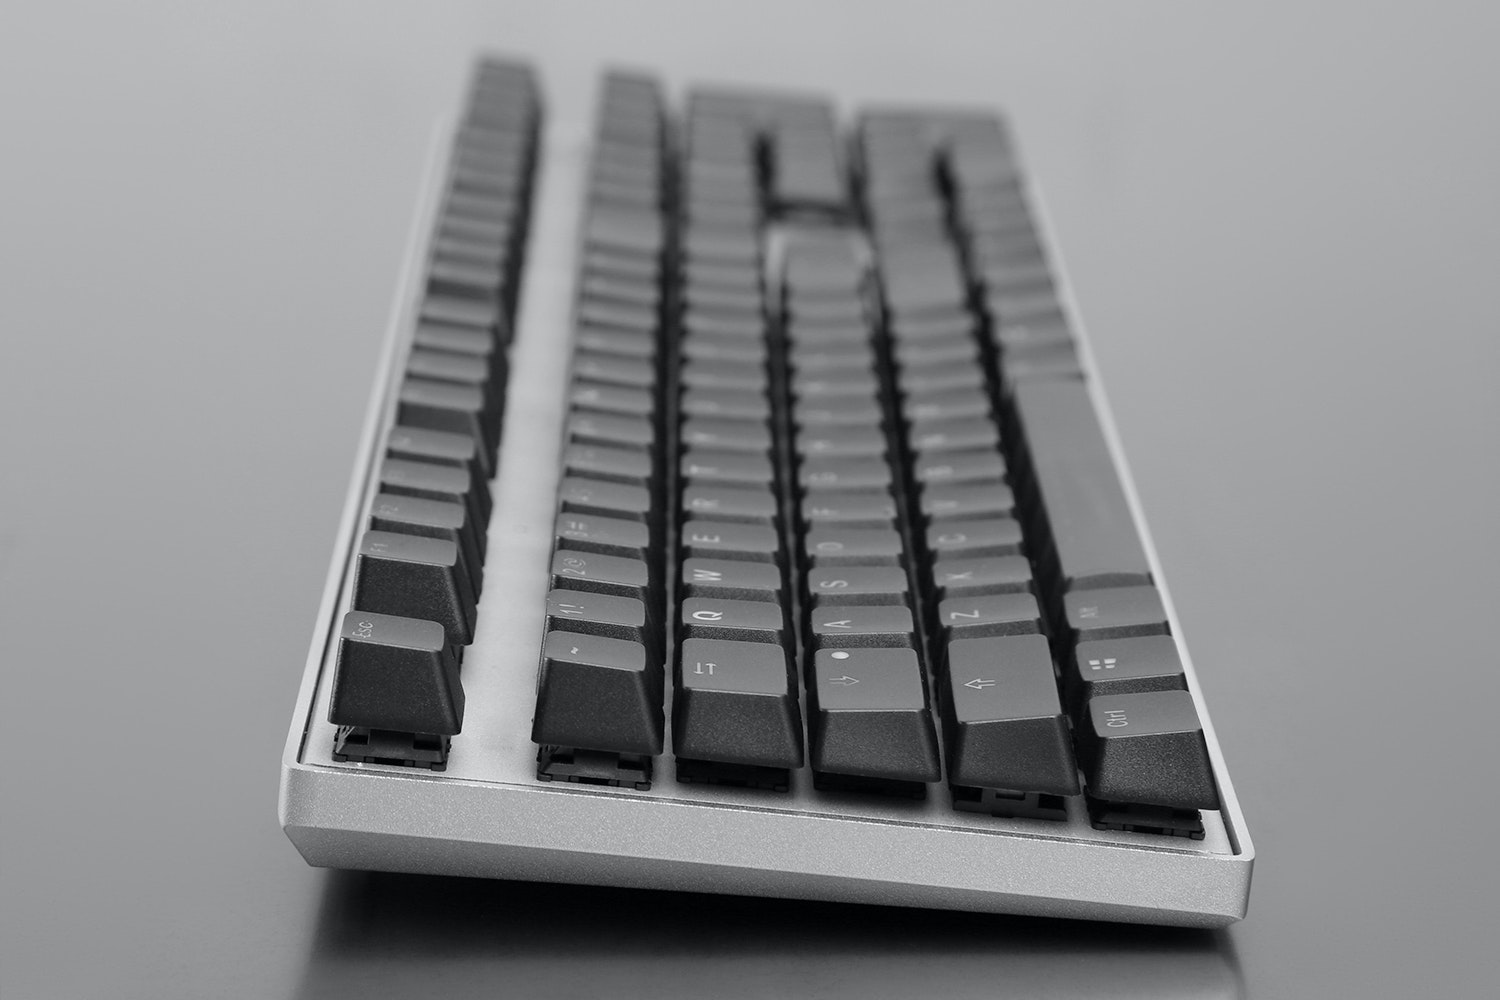 DSX Backlit Keyboard - Massdrop Exclusive